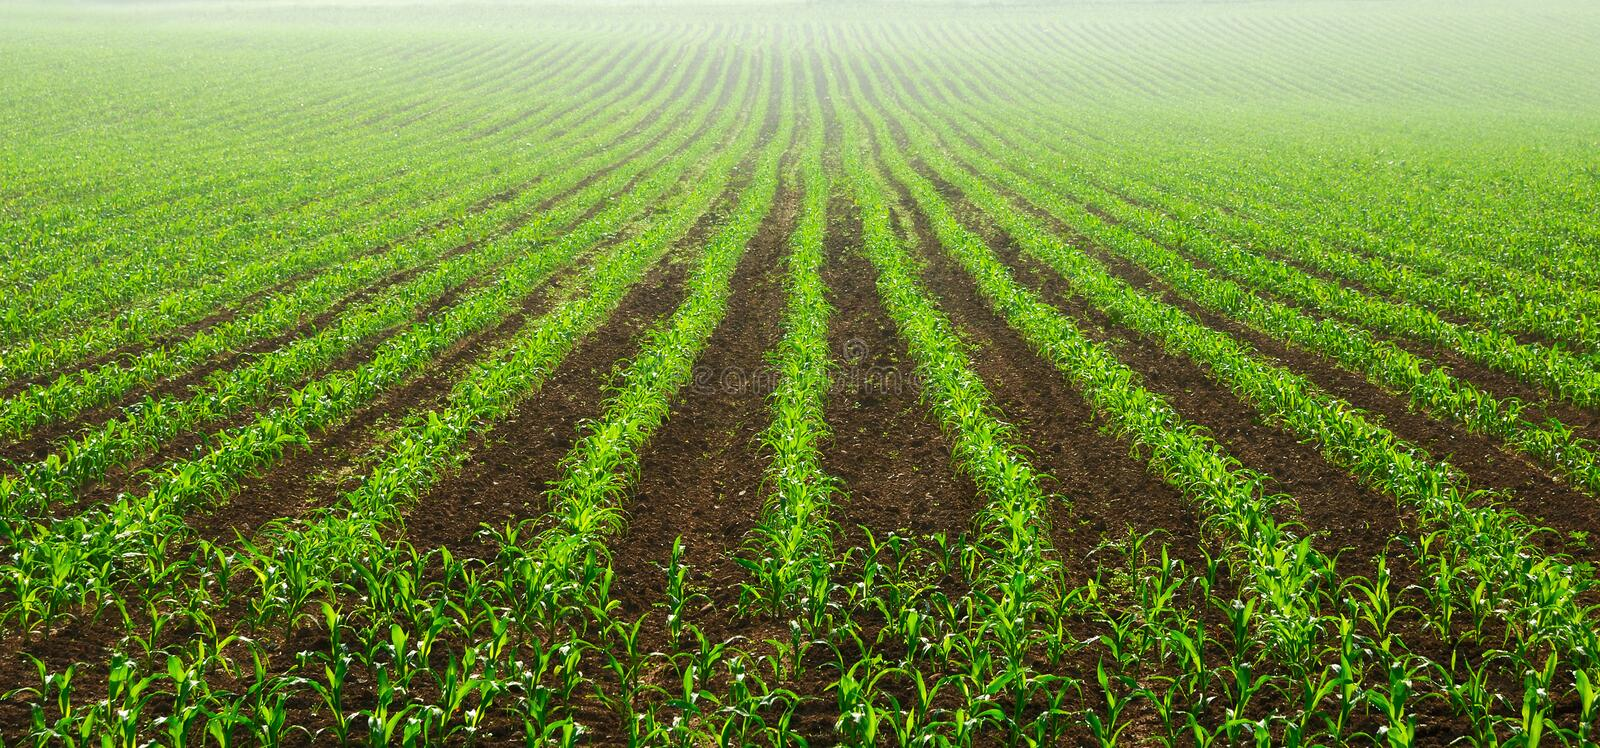 Download Rows Of Young Corn Plants Royalty Free Stock Images - Image: 25616209